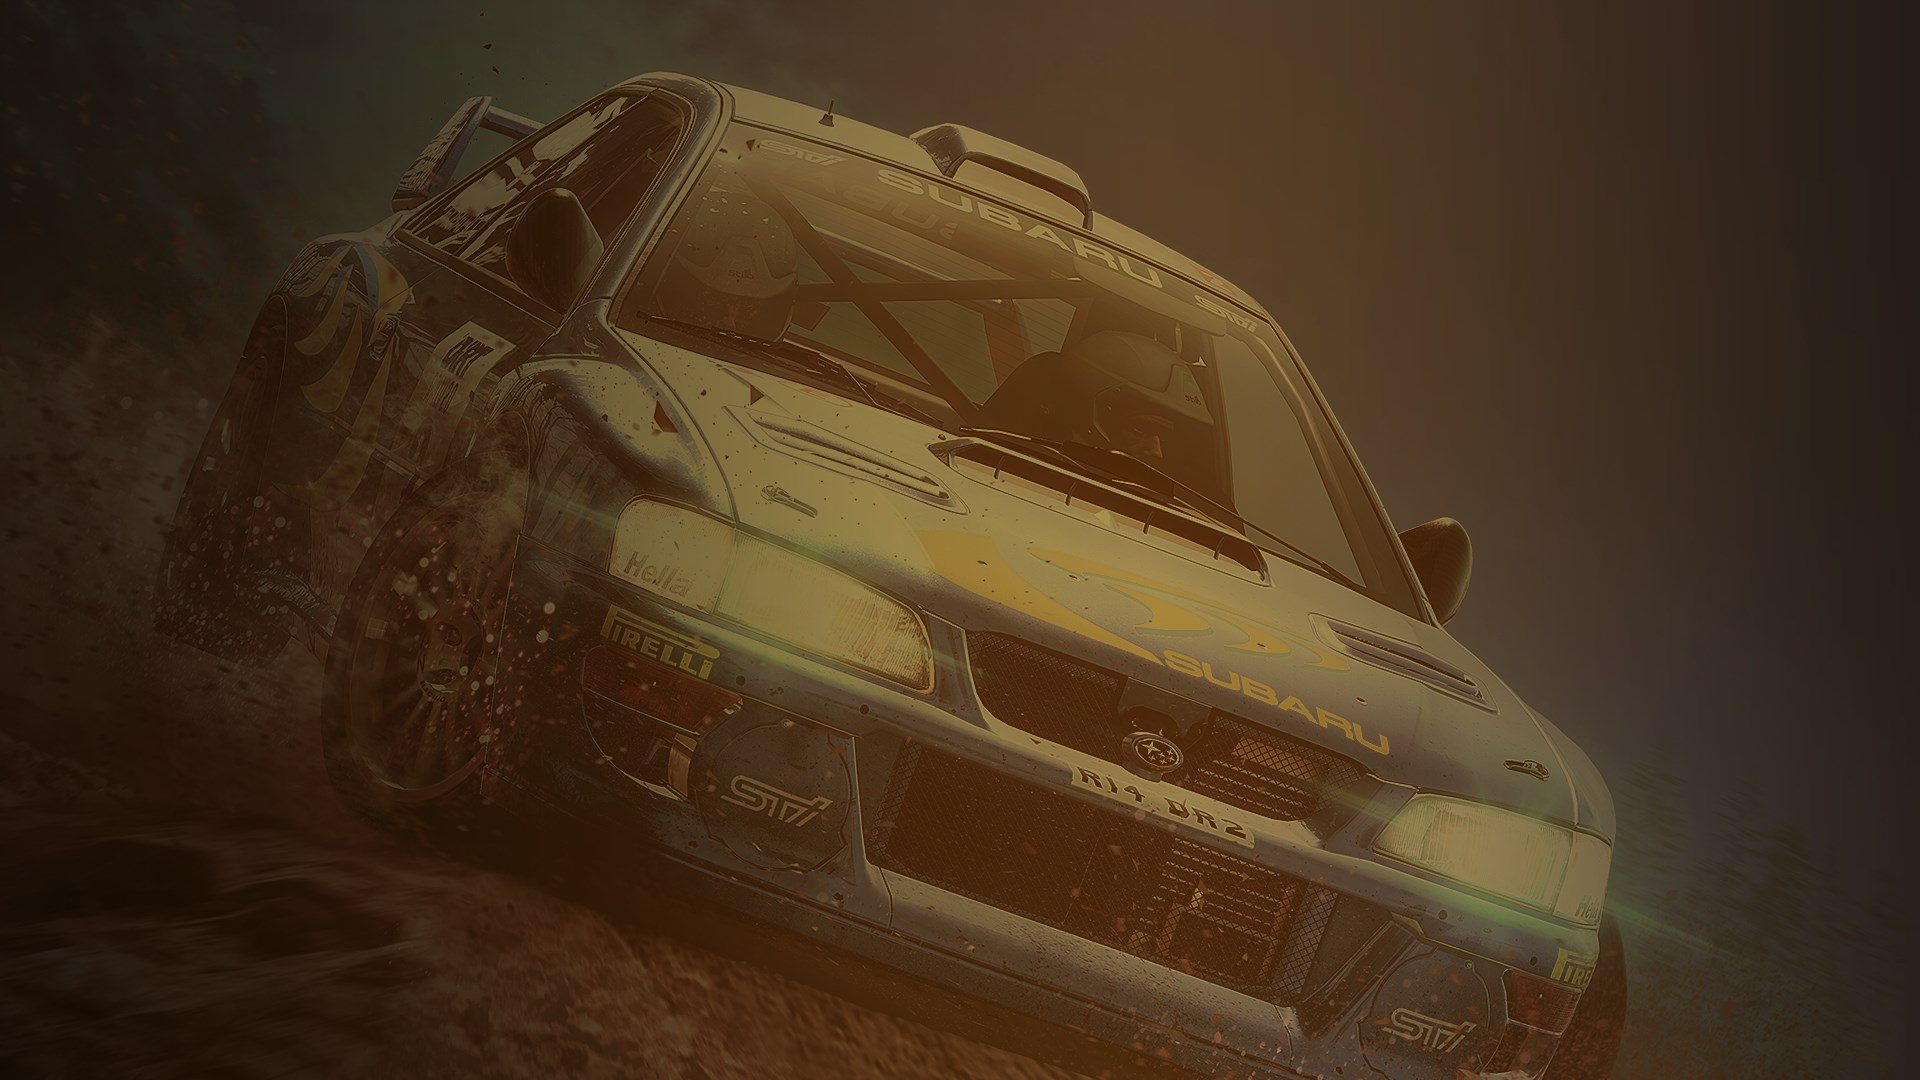 Windows Store - DiRT Rally 2.0 Deluxe Content Pack 2.0 (Seasons 3 and 4)